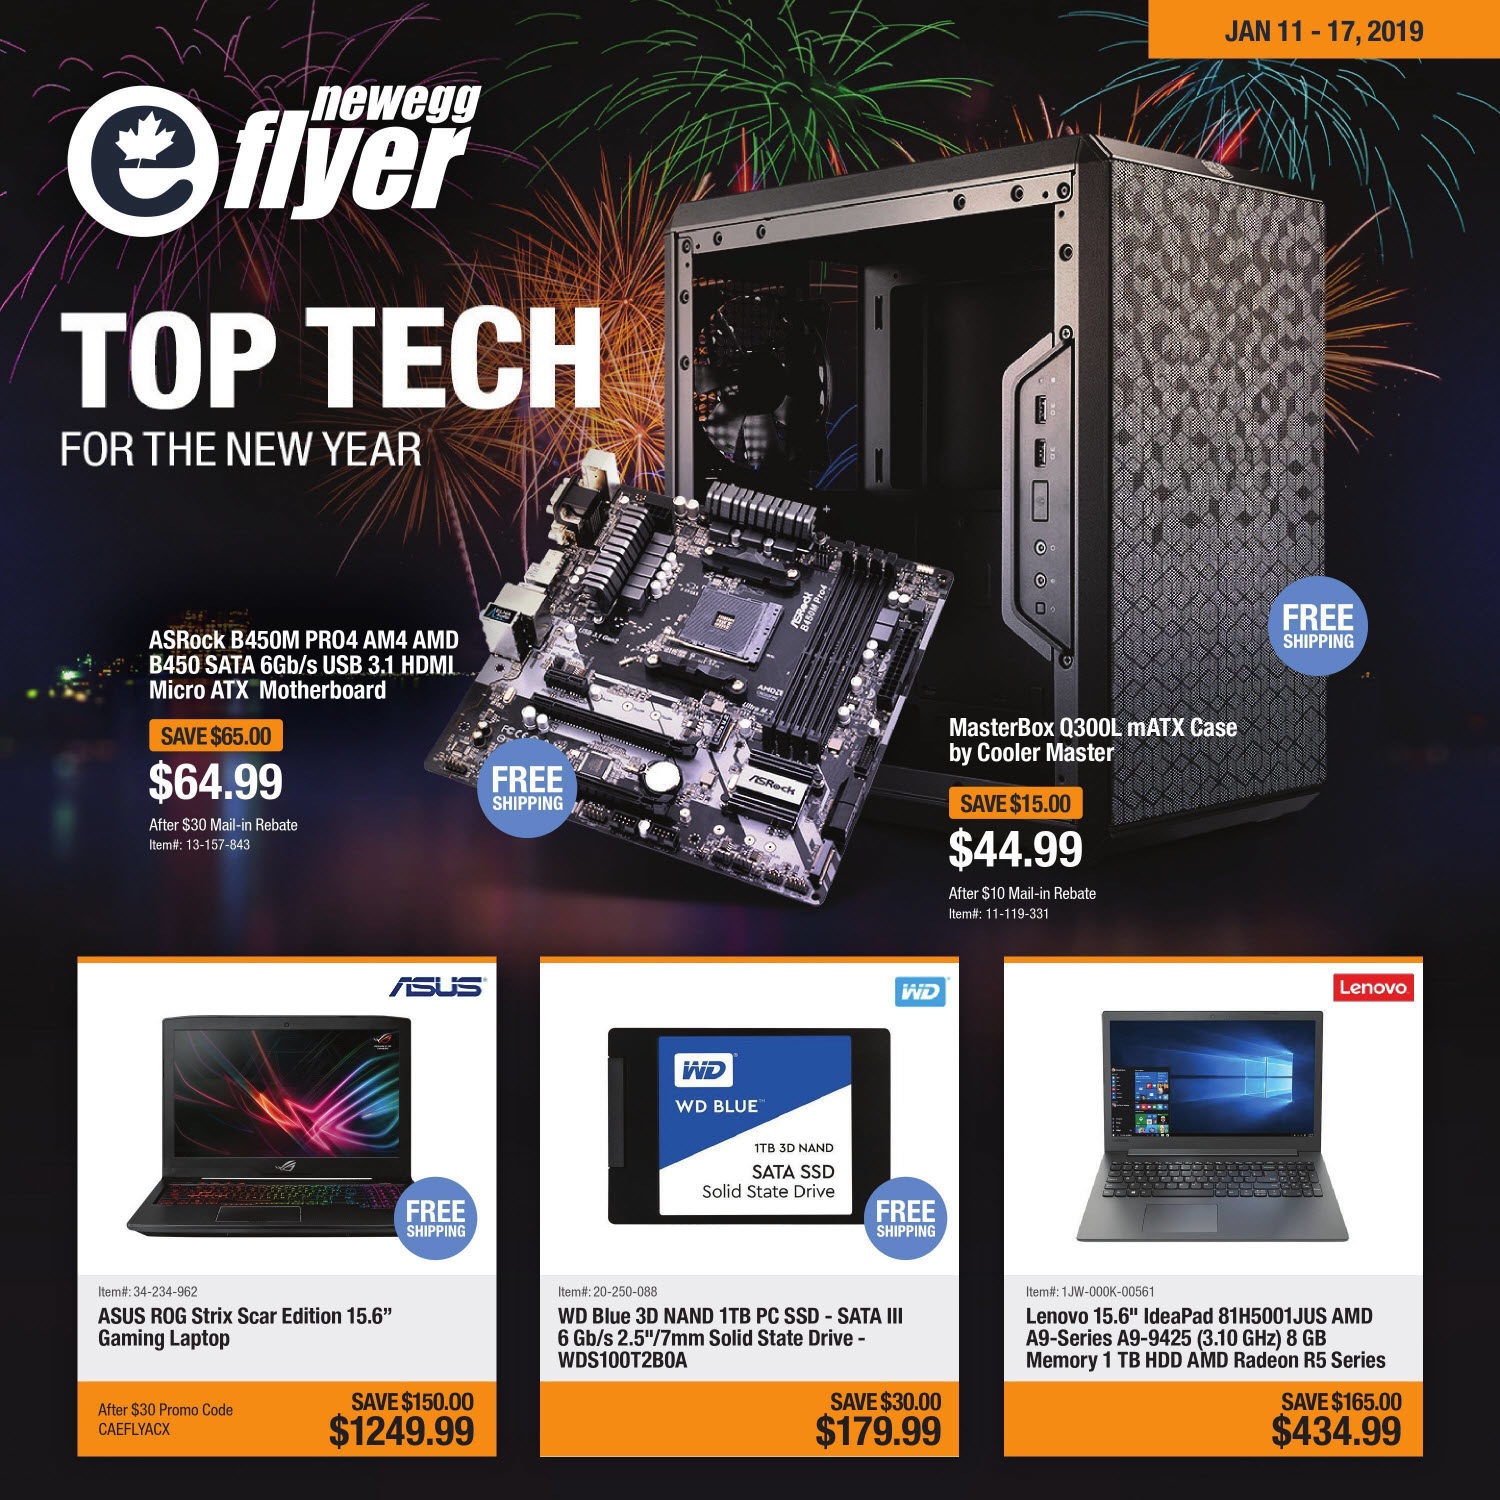 Newegg Weekly Flyer - Top Tech For The New Year - Jan 11